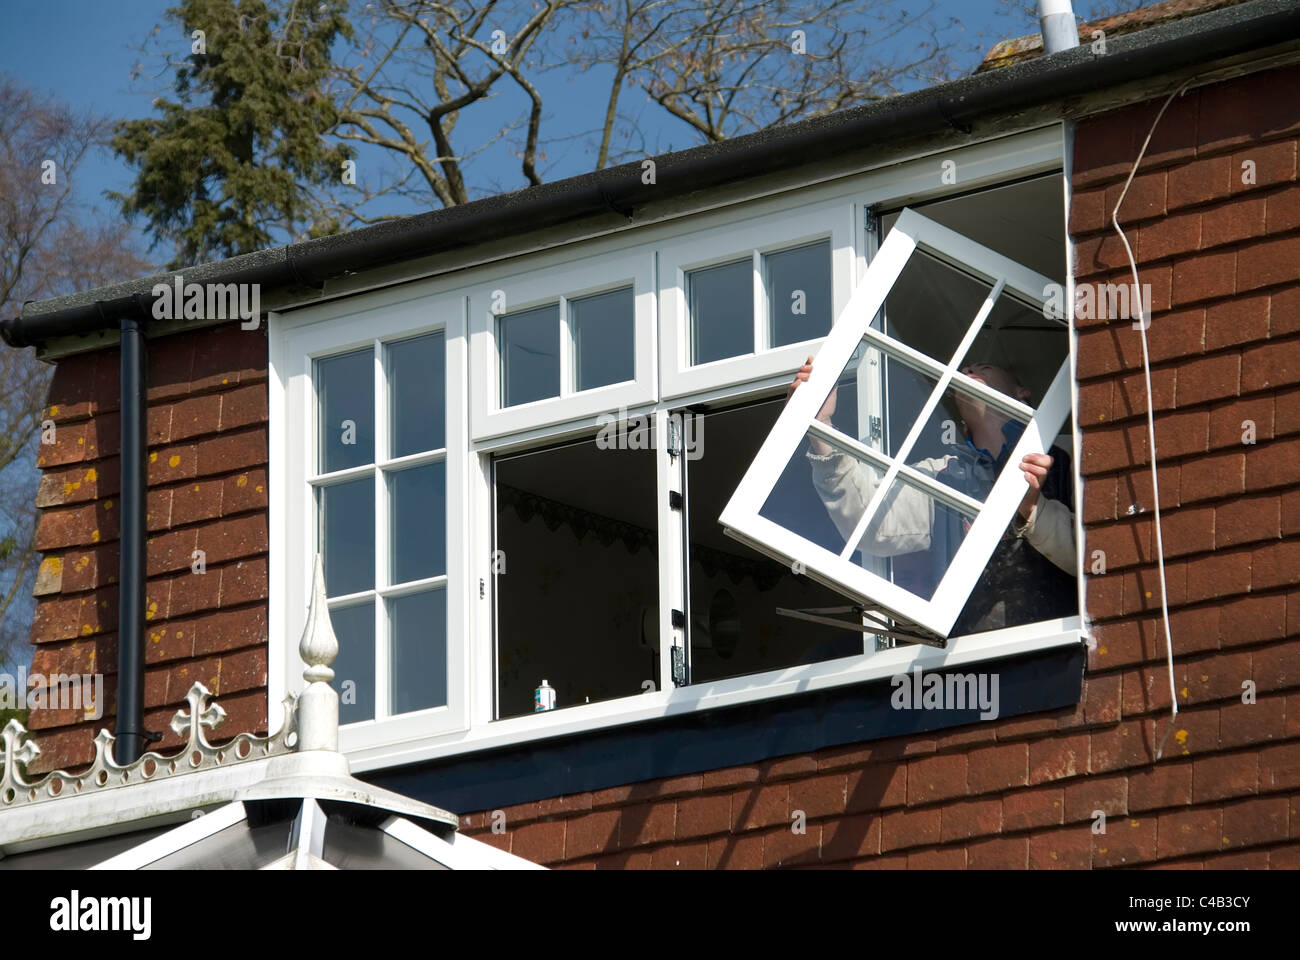 Installing A rated energy efficient replacement double glazed windows on an old house - Stock Image